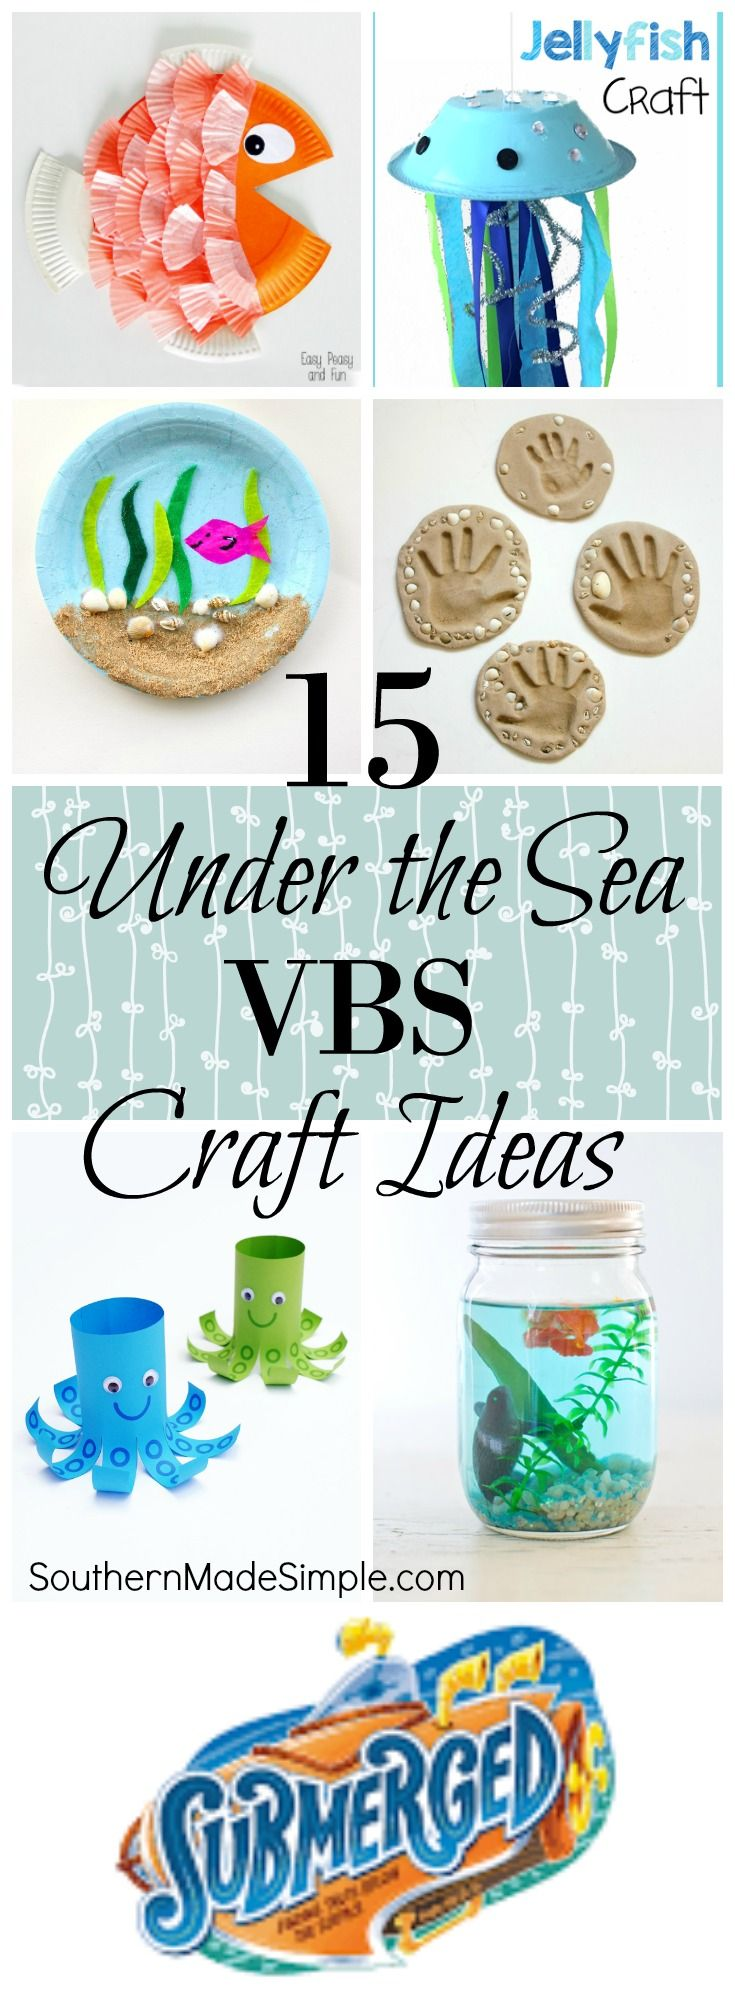 vbs craft ideas for kids vbs craft ideas submerged quot the sea quot theme for 7314